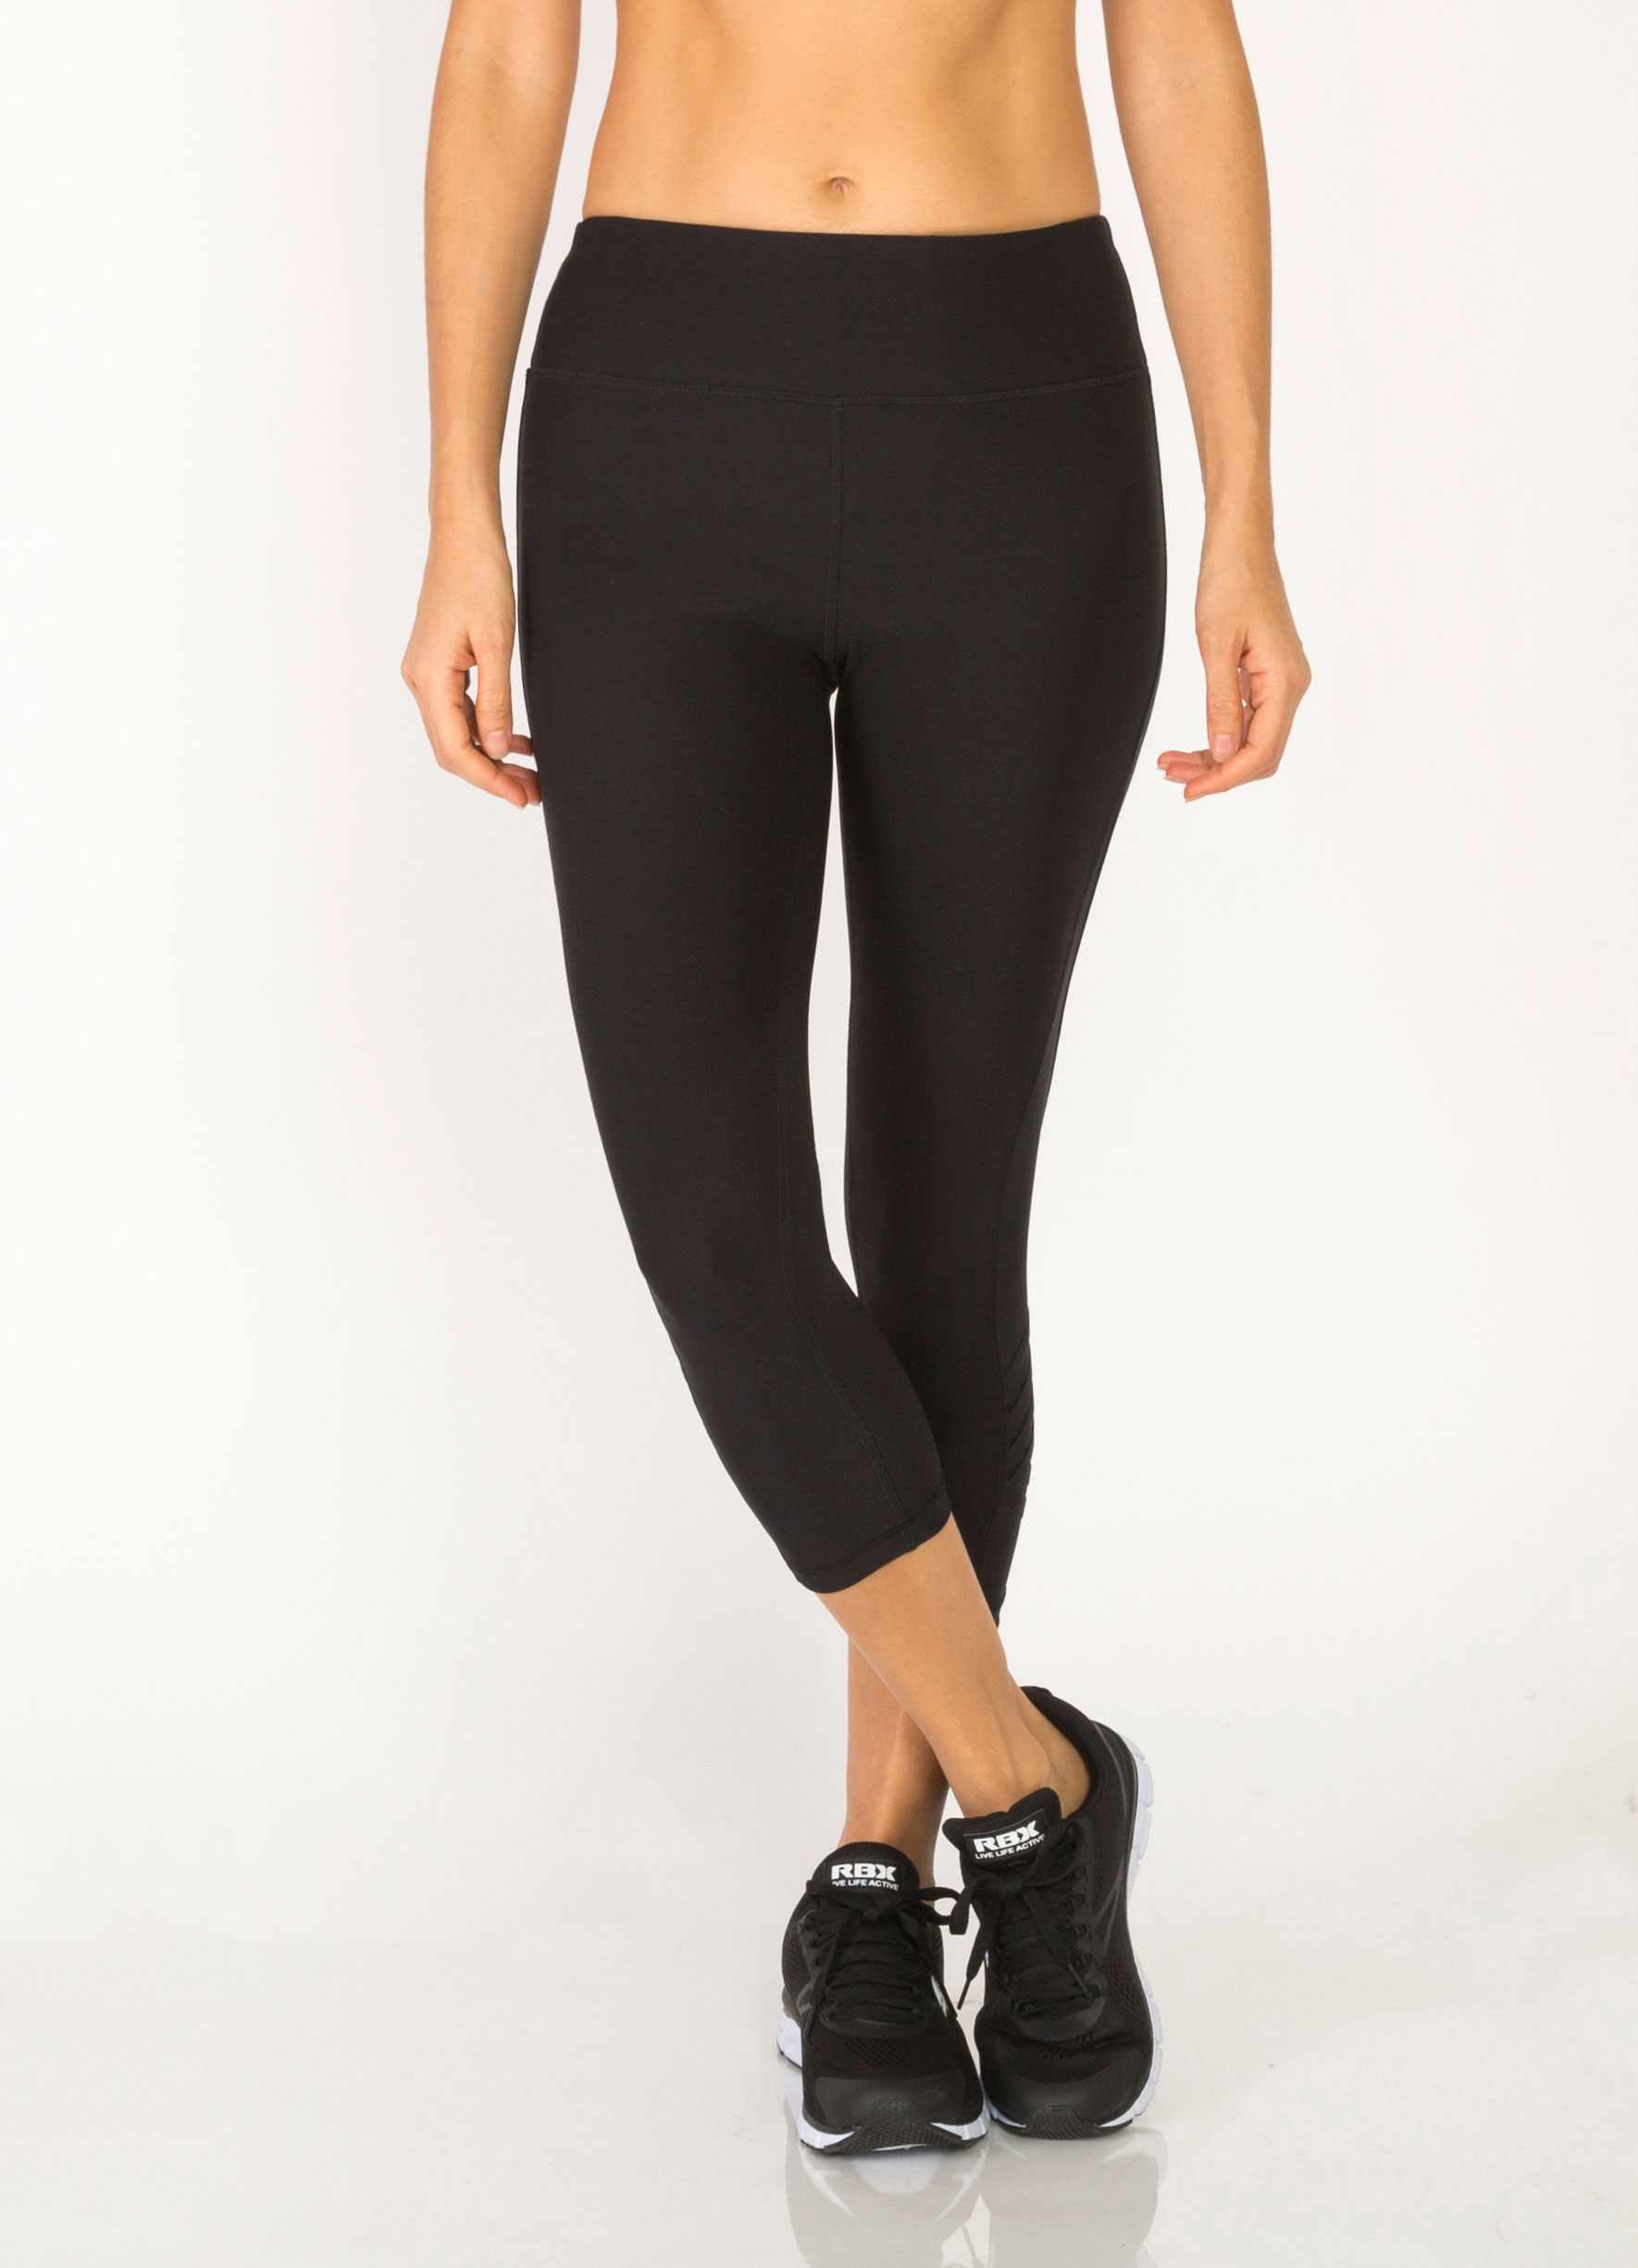 Rbx Active Clothing Women S Activewear At Danceweardeals Com